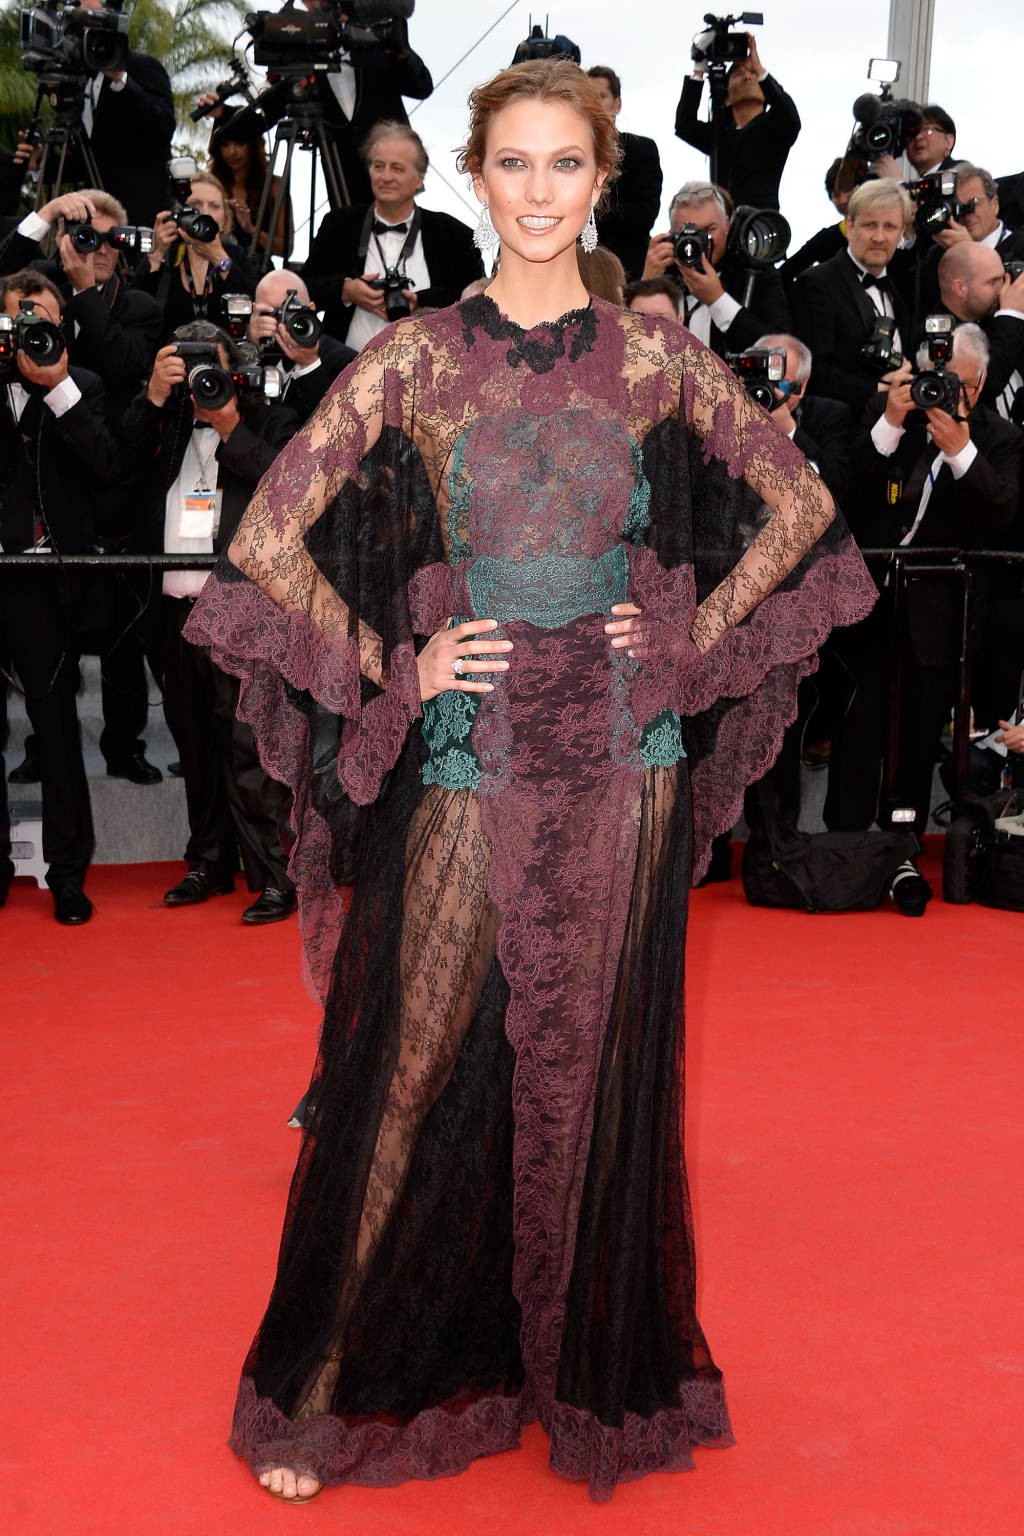 The Worst Dresses on the Cannes Red Carpet Ever - Eva